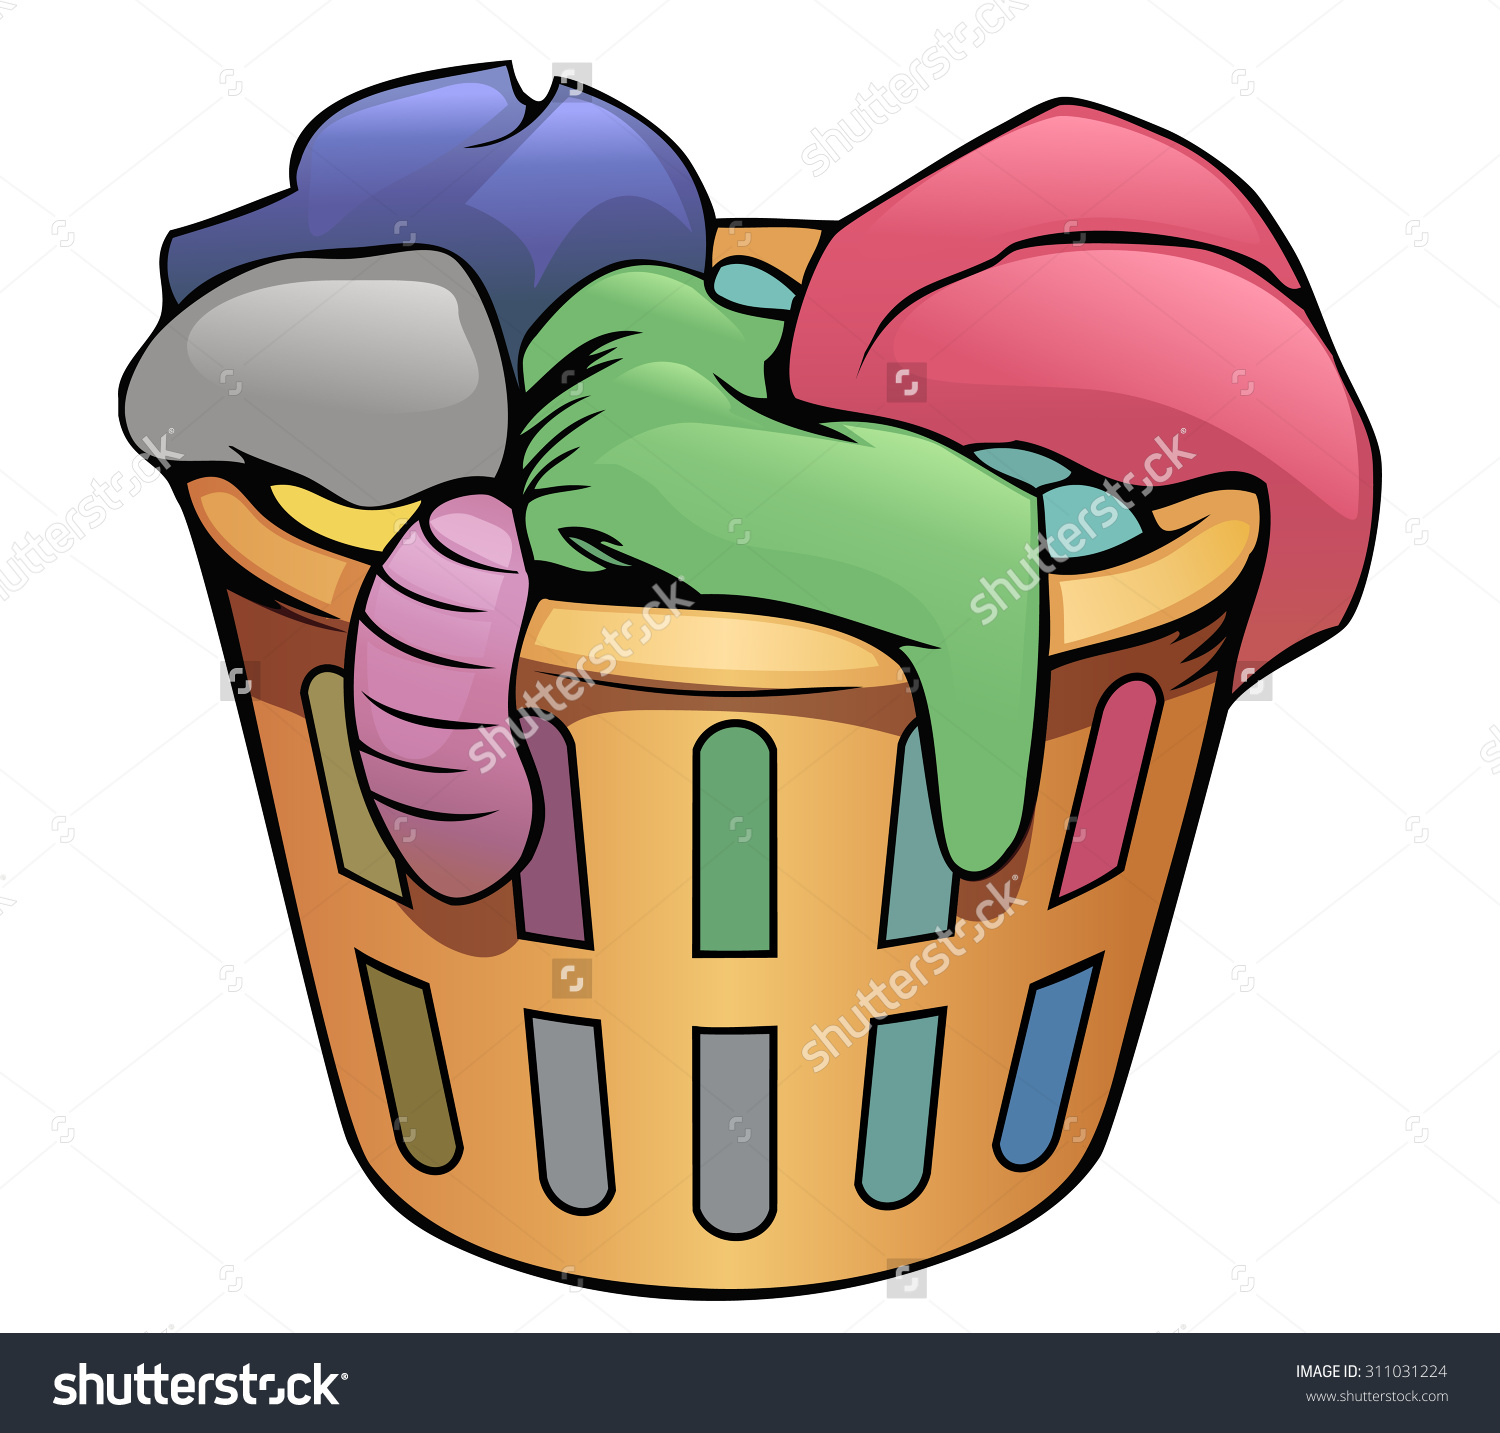 Clothes hamper free download. Responsibility clipart laundry basket